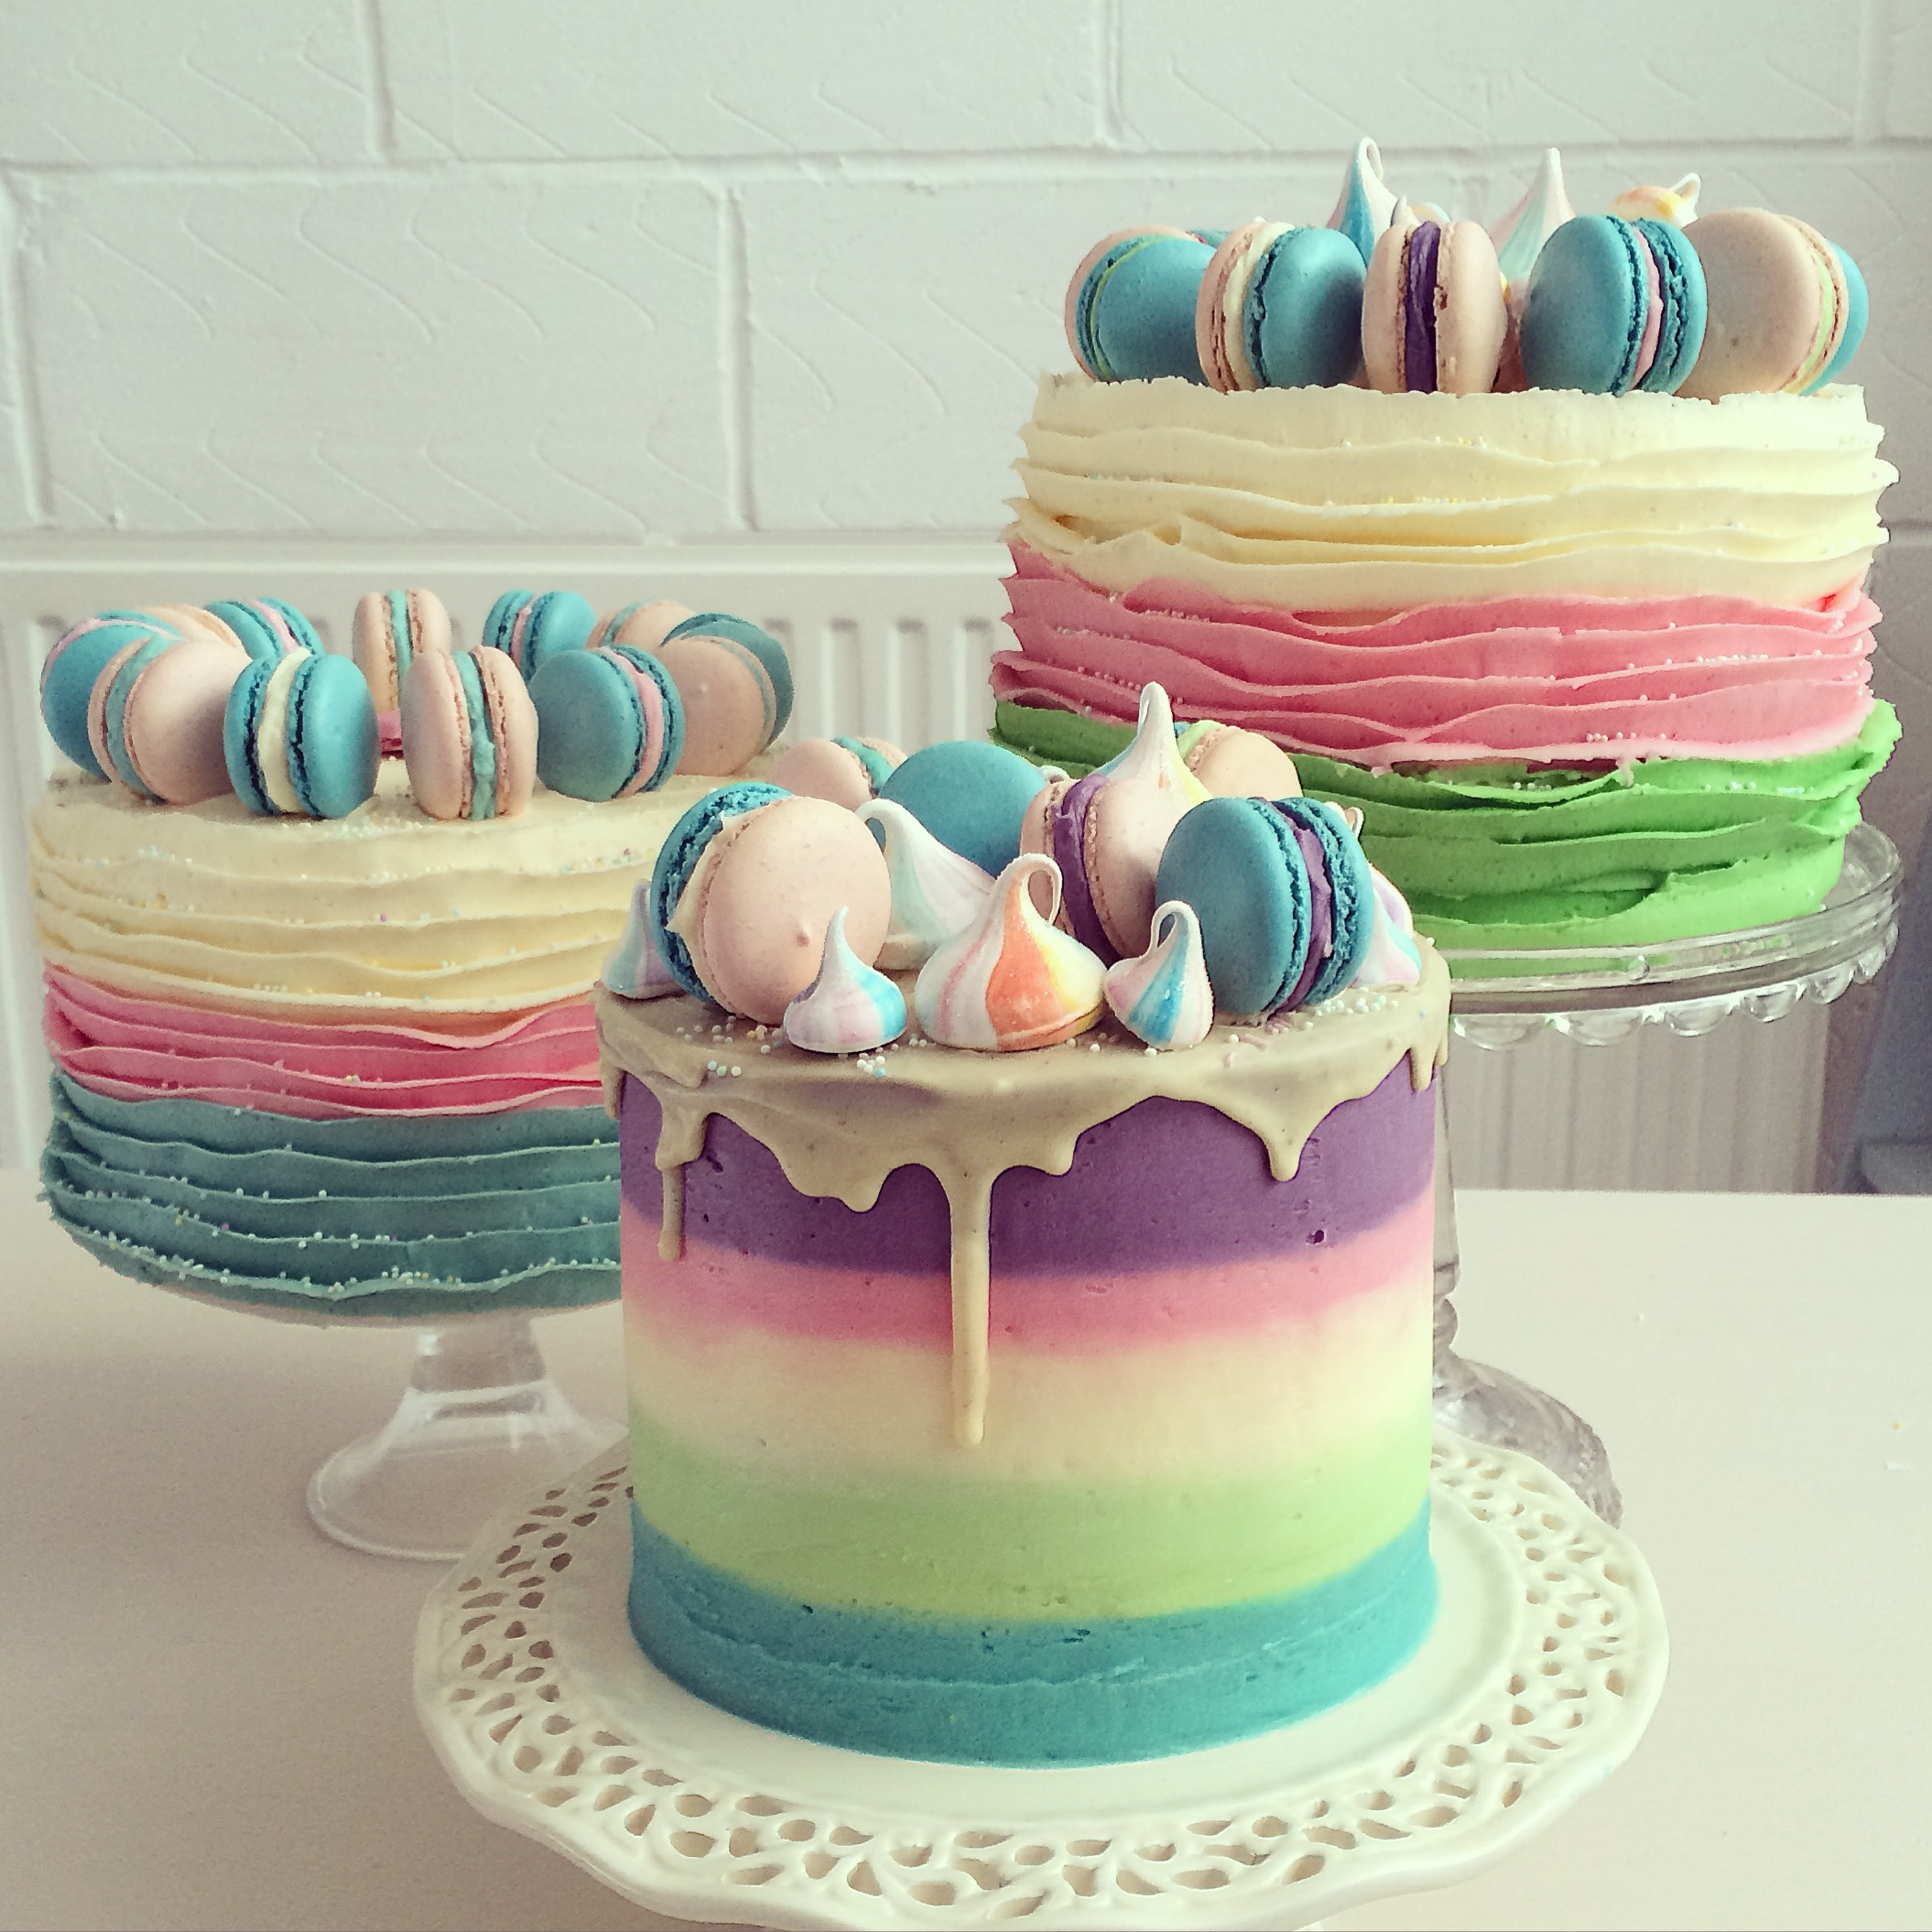 How To Decorate Number Cake  With Buttercream